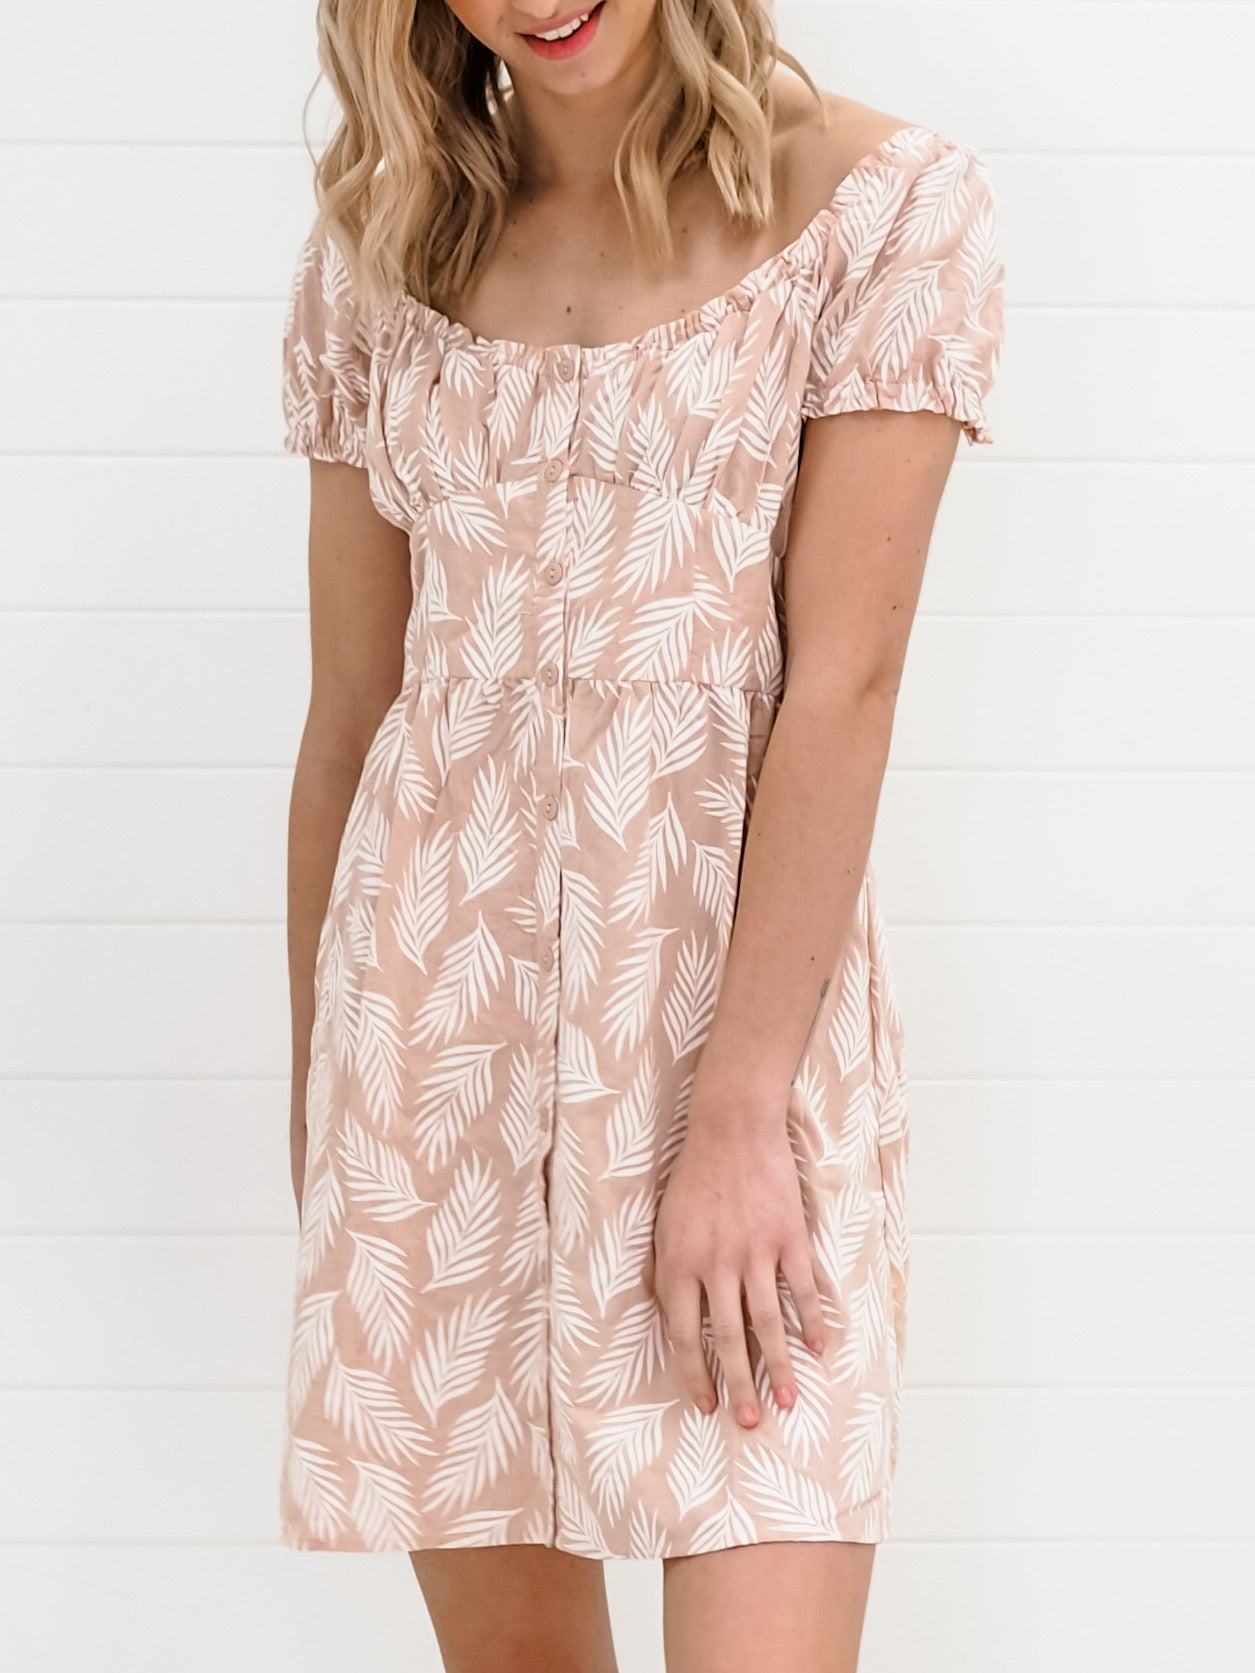 Kailani Dress - Pink